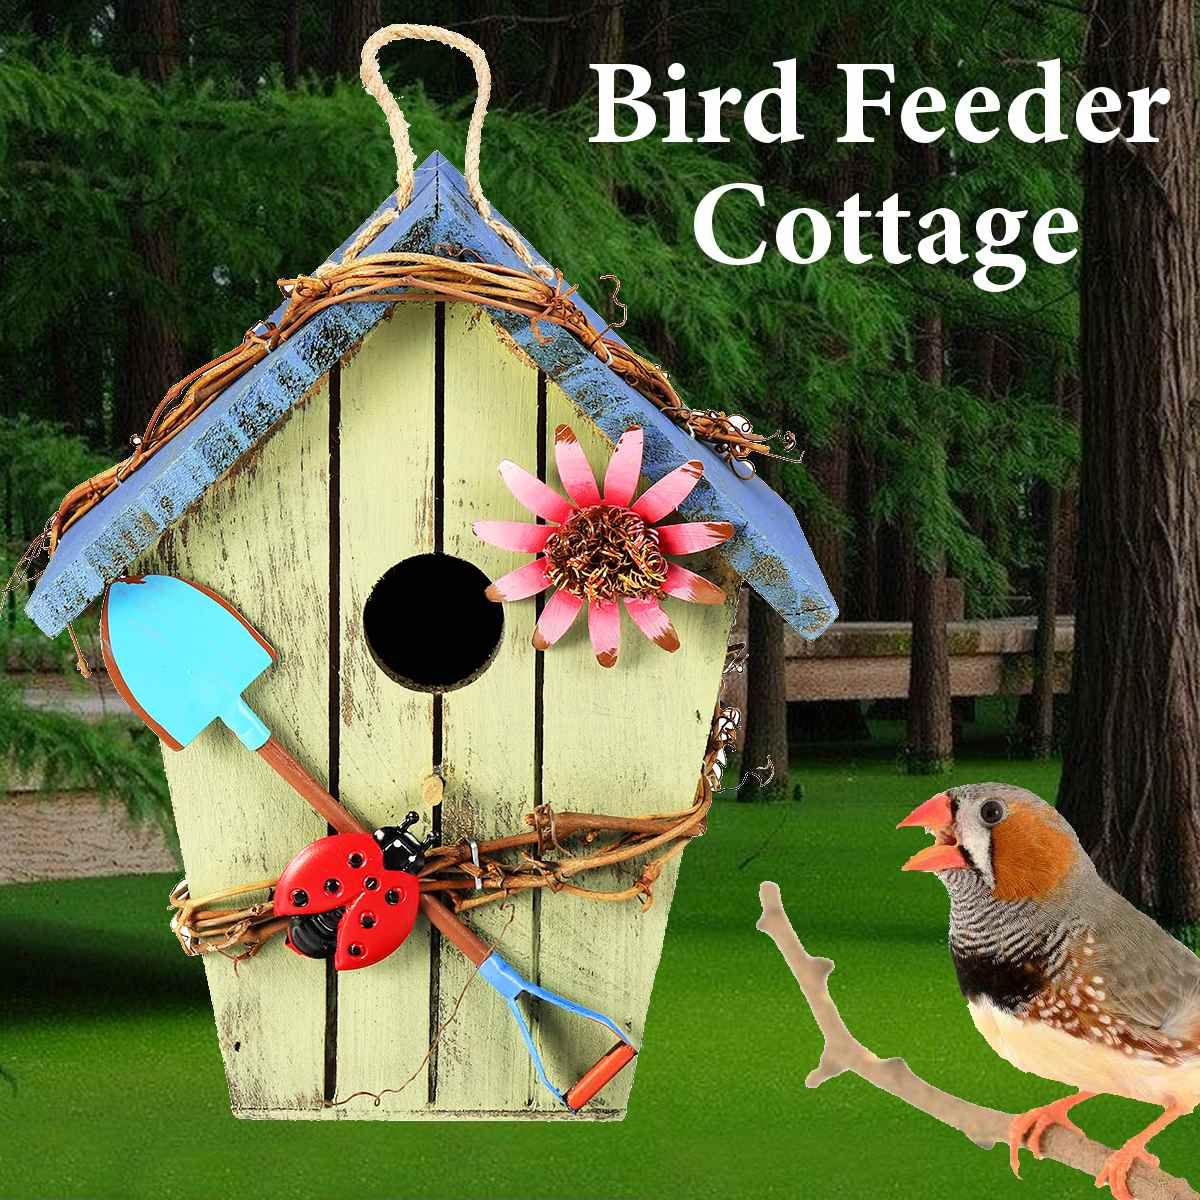 Wild Bird Feeder Outdoor Bird Feeders Food Container Hanging Gazebo Blue House Shape Bird Feeder ...